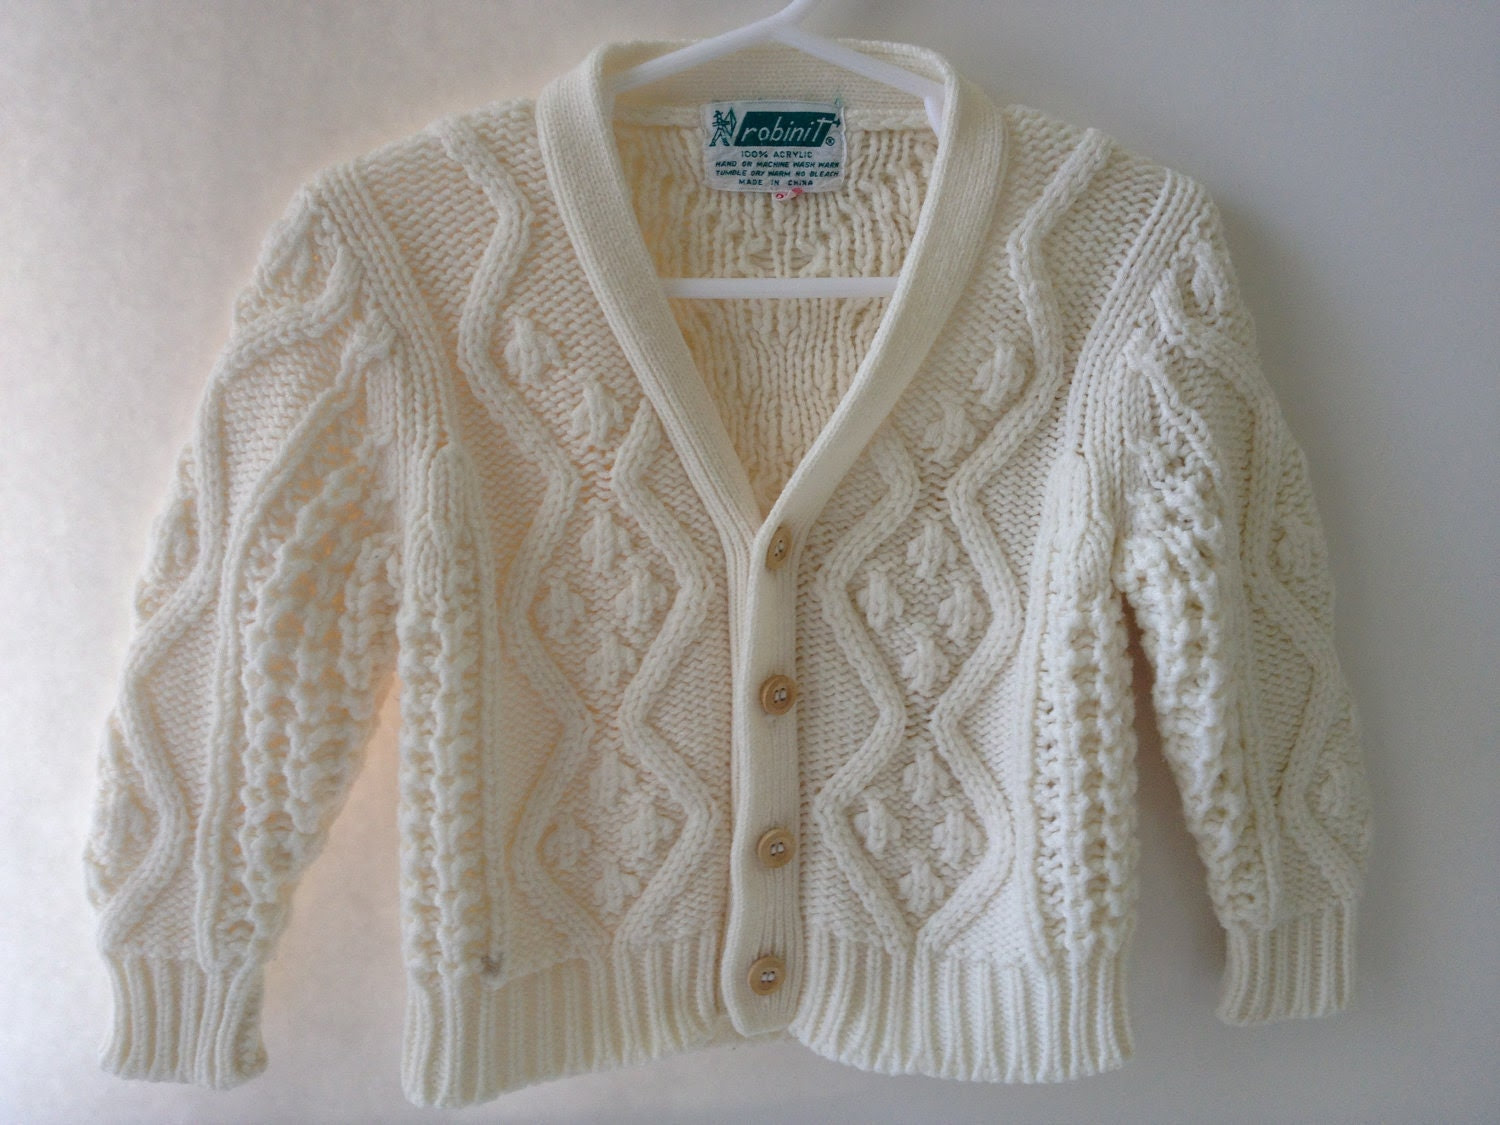 Vintage Cable Knit Cardigan Sweater: 2T